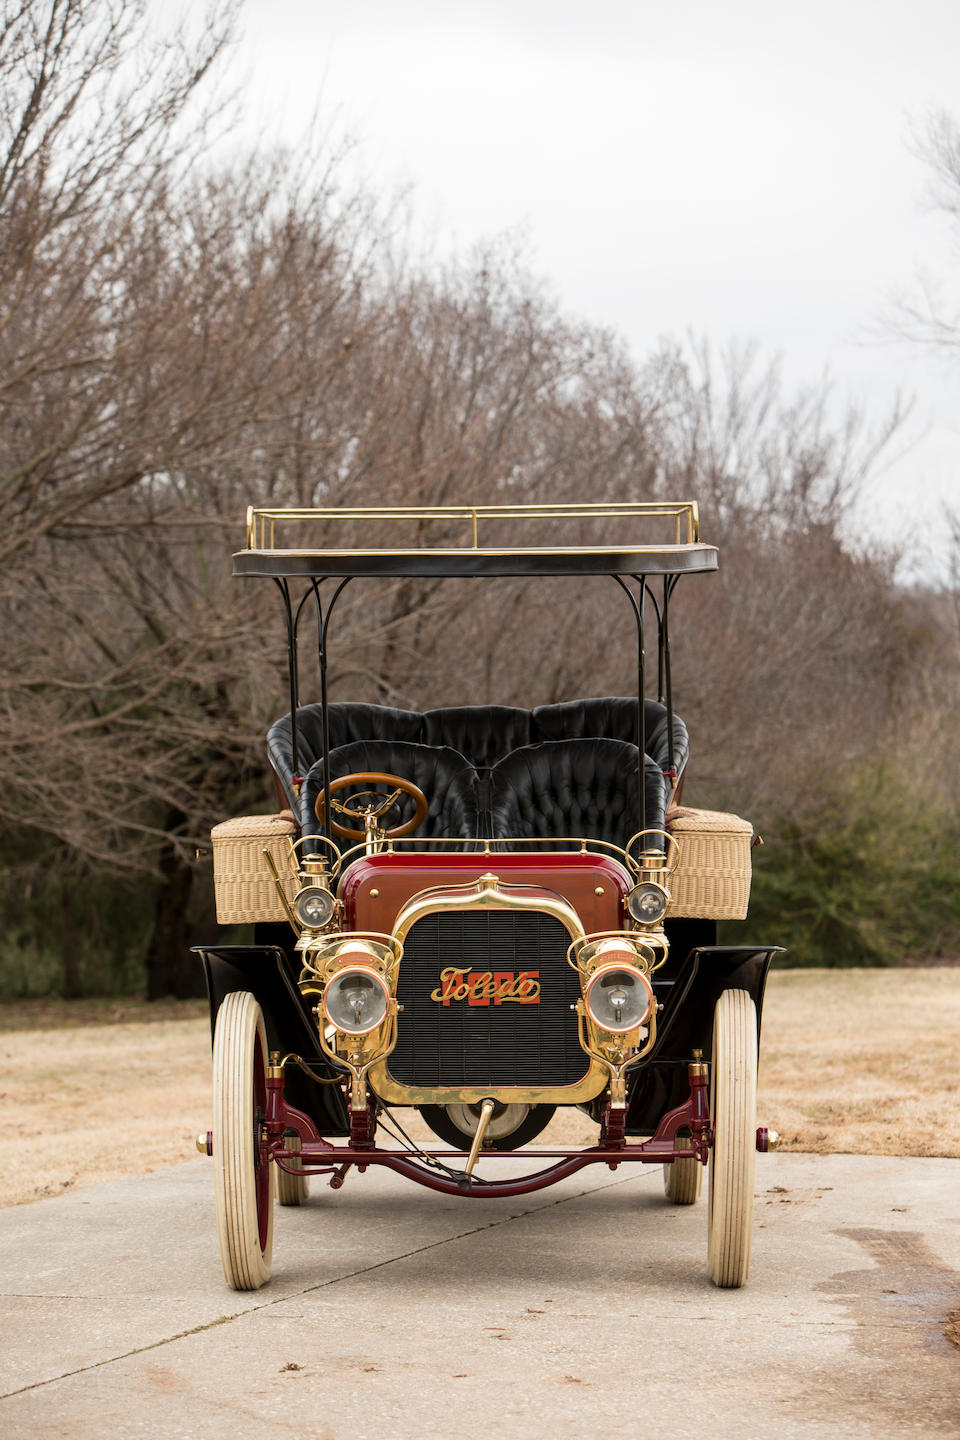 <b>c.1904 Pope-Toledo 24HP Four-Cylinder Rear Entrance Tonneau</b><br />Engine no. 2444